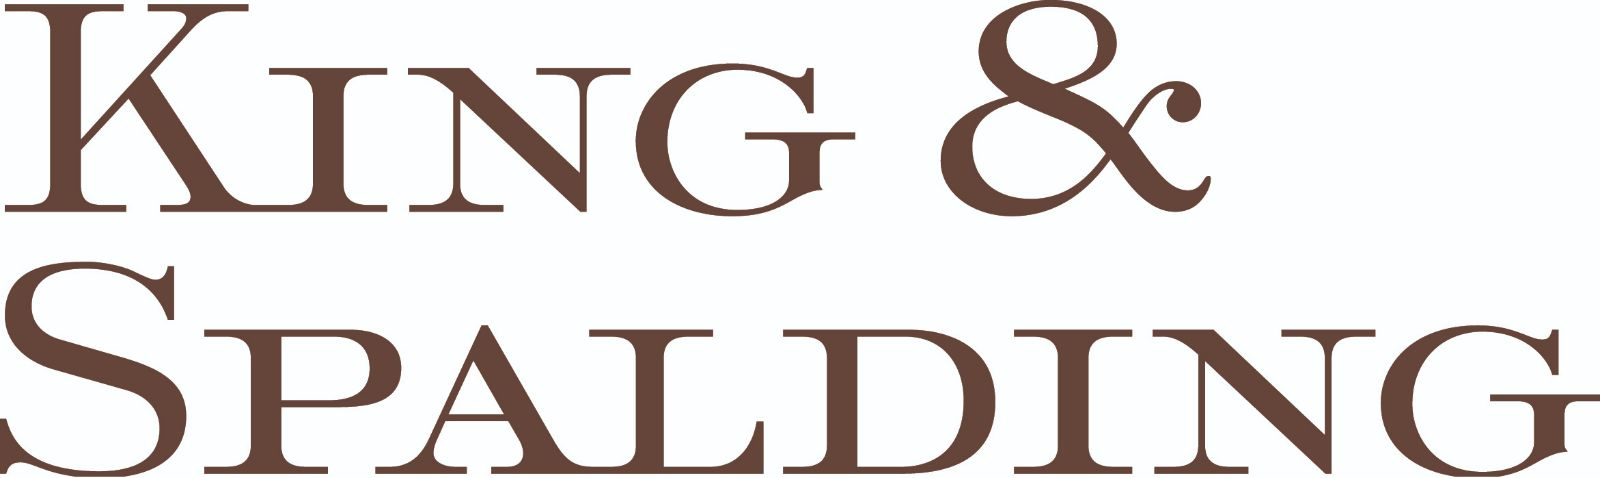 king-and-spaulding-logo.jpg